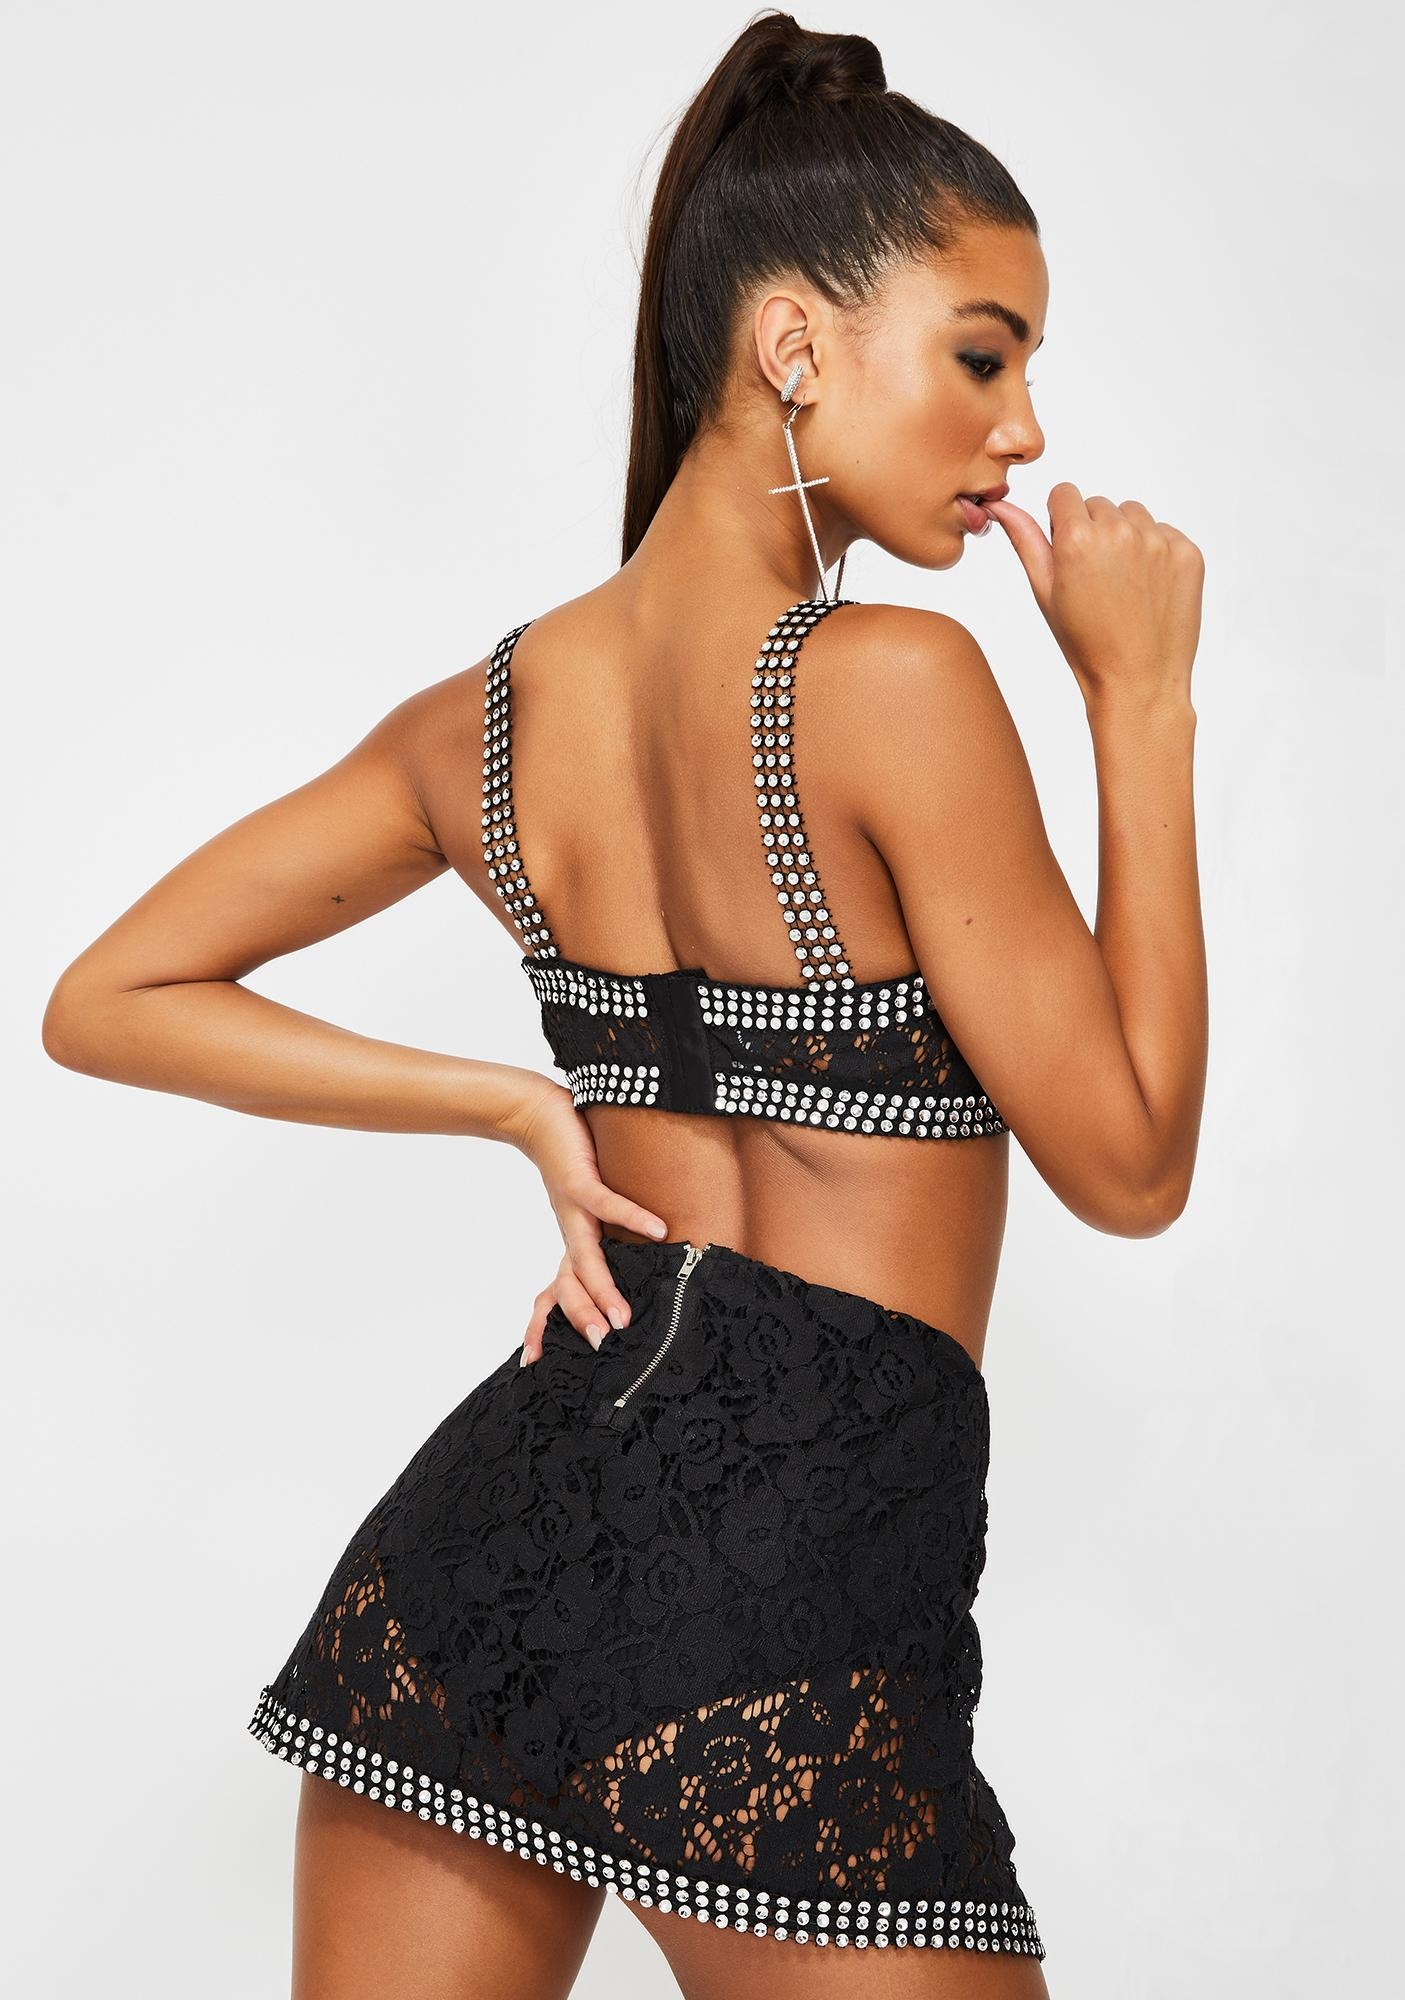 Kiki Riki Glam It Up Bustier Set